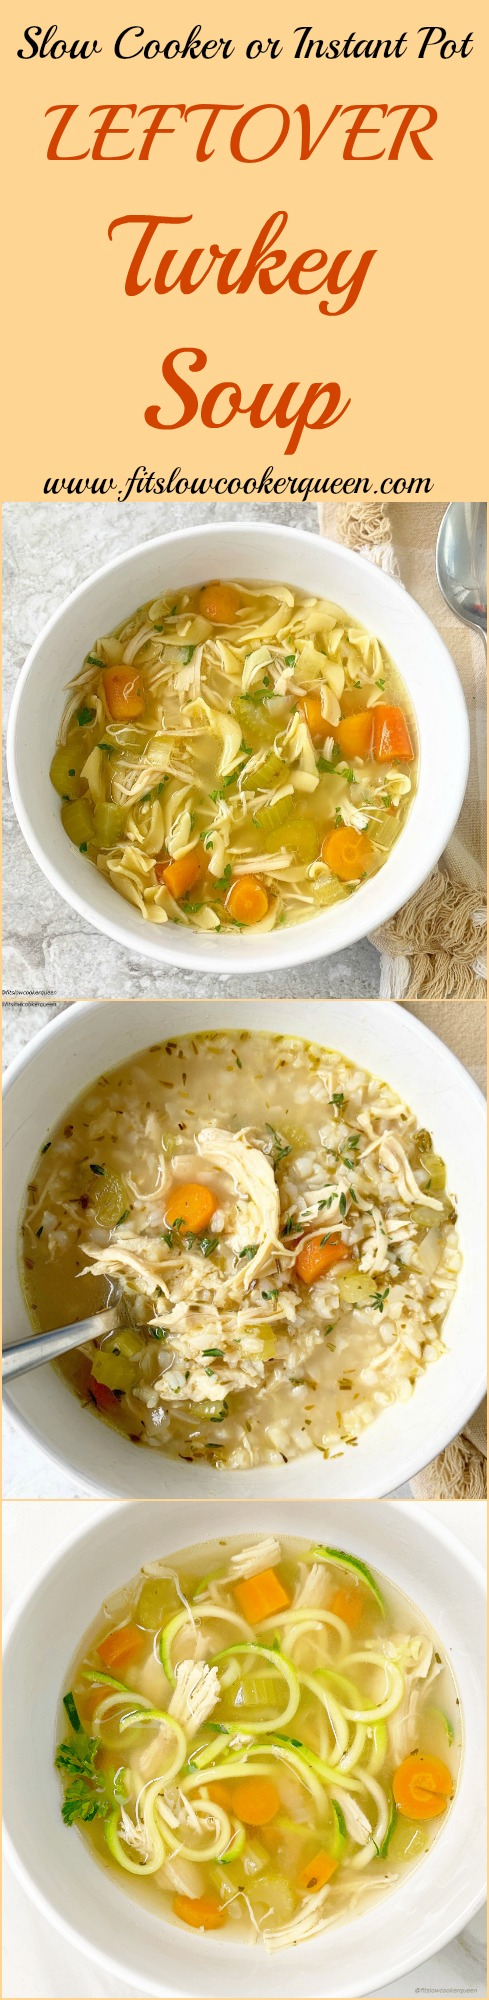 Another pinterest pin for Slow Cooker_Instant Pot Leftover Turkey Soup